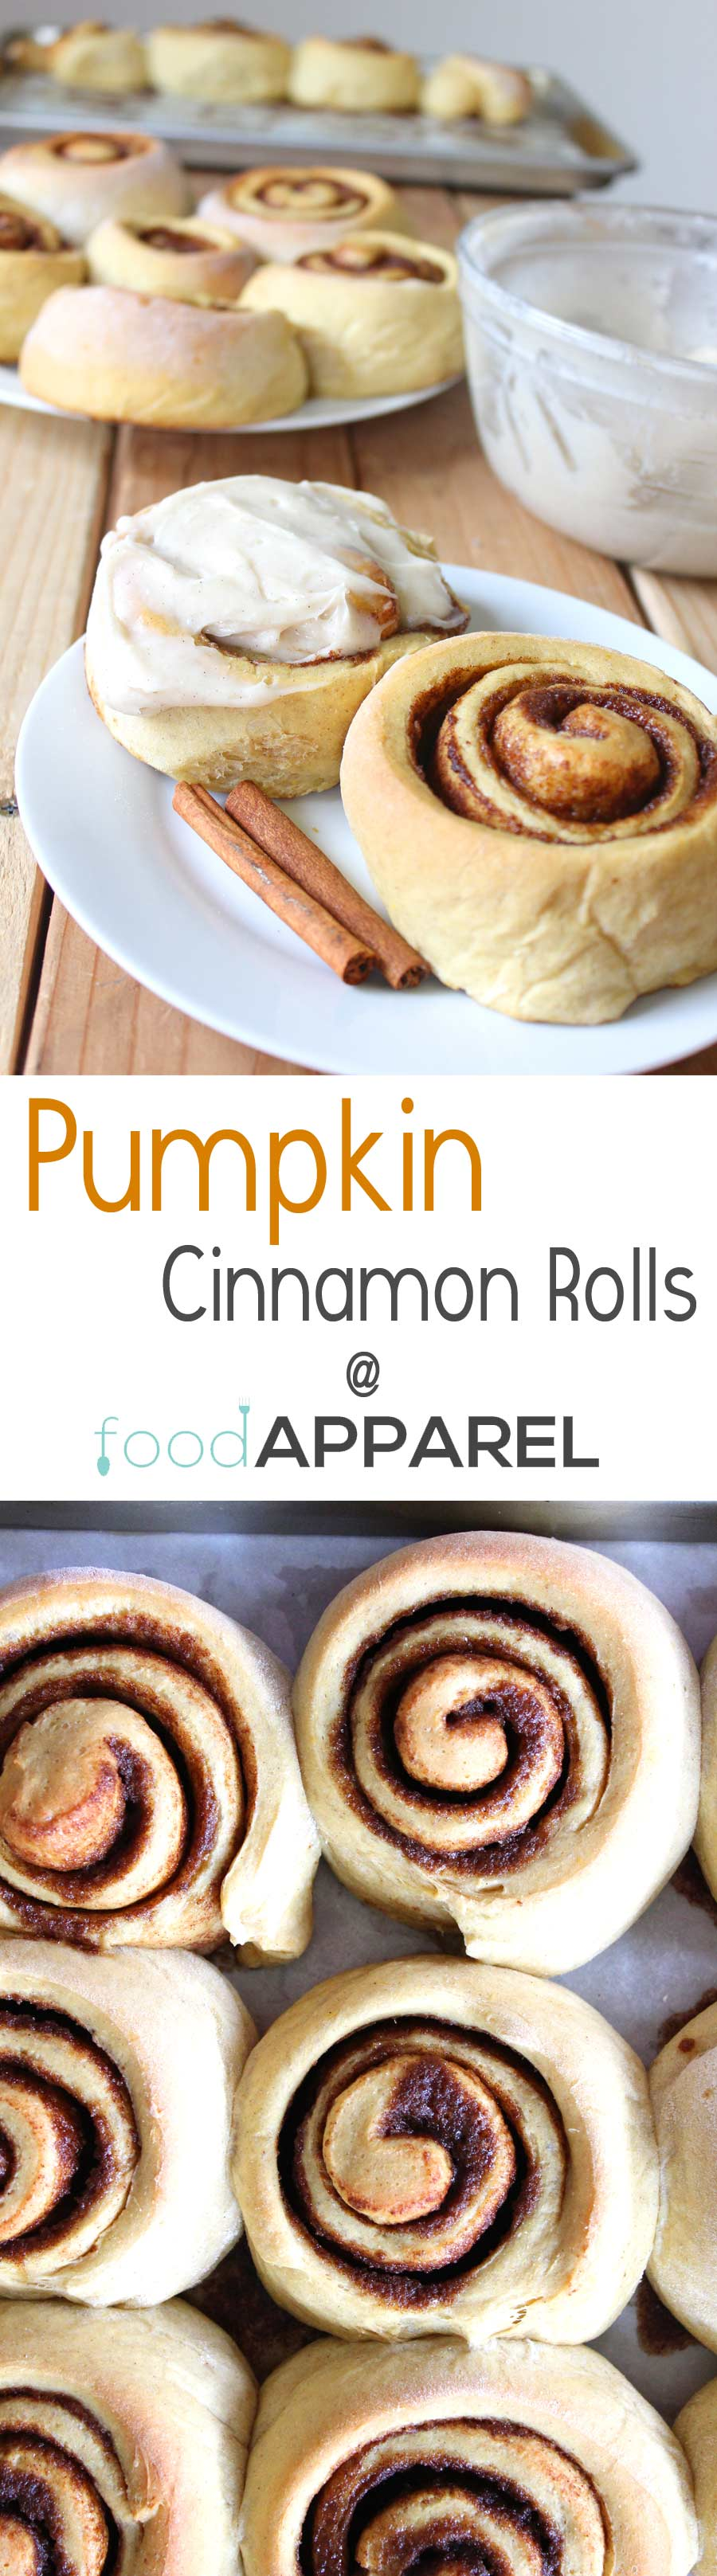 Pumpkin Cinnamon Rolls with Cinnamon Cream Cheese Frosting. These are just screaming for you to make 'em! #recipe @foodapparel